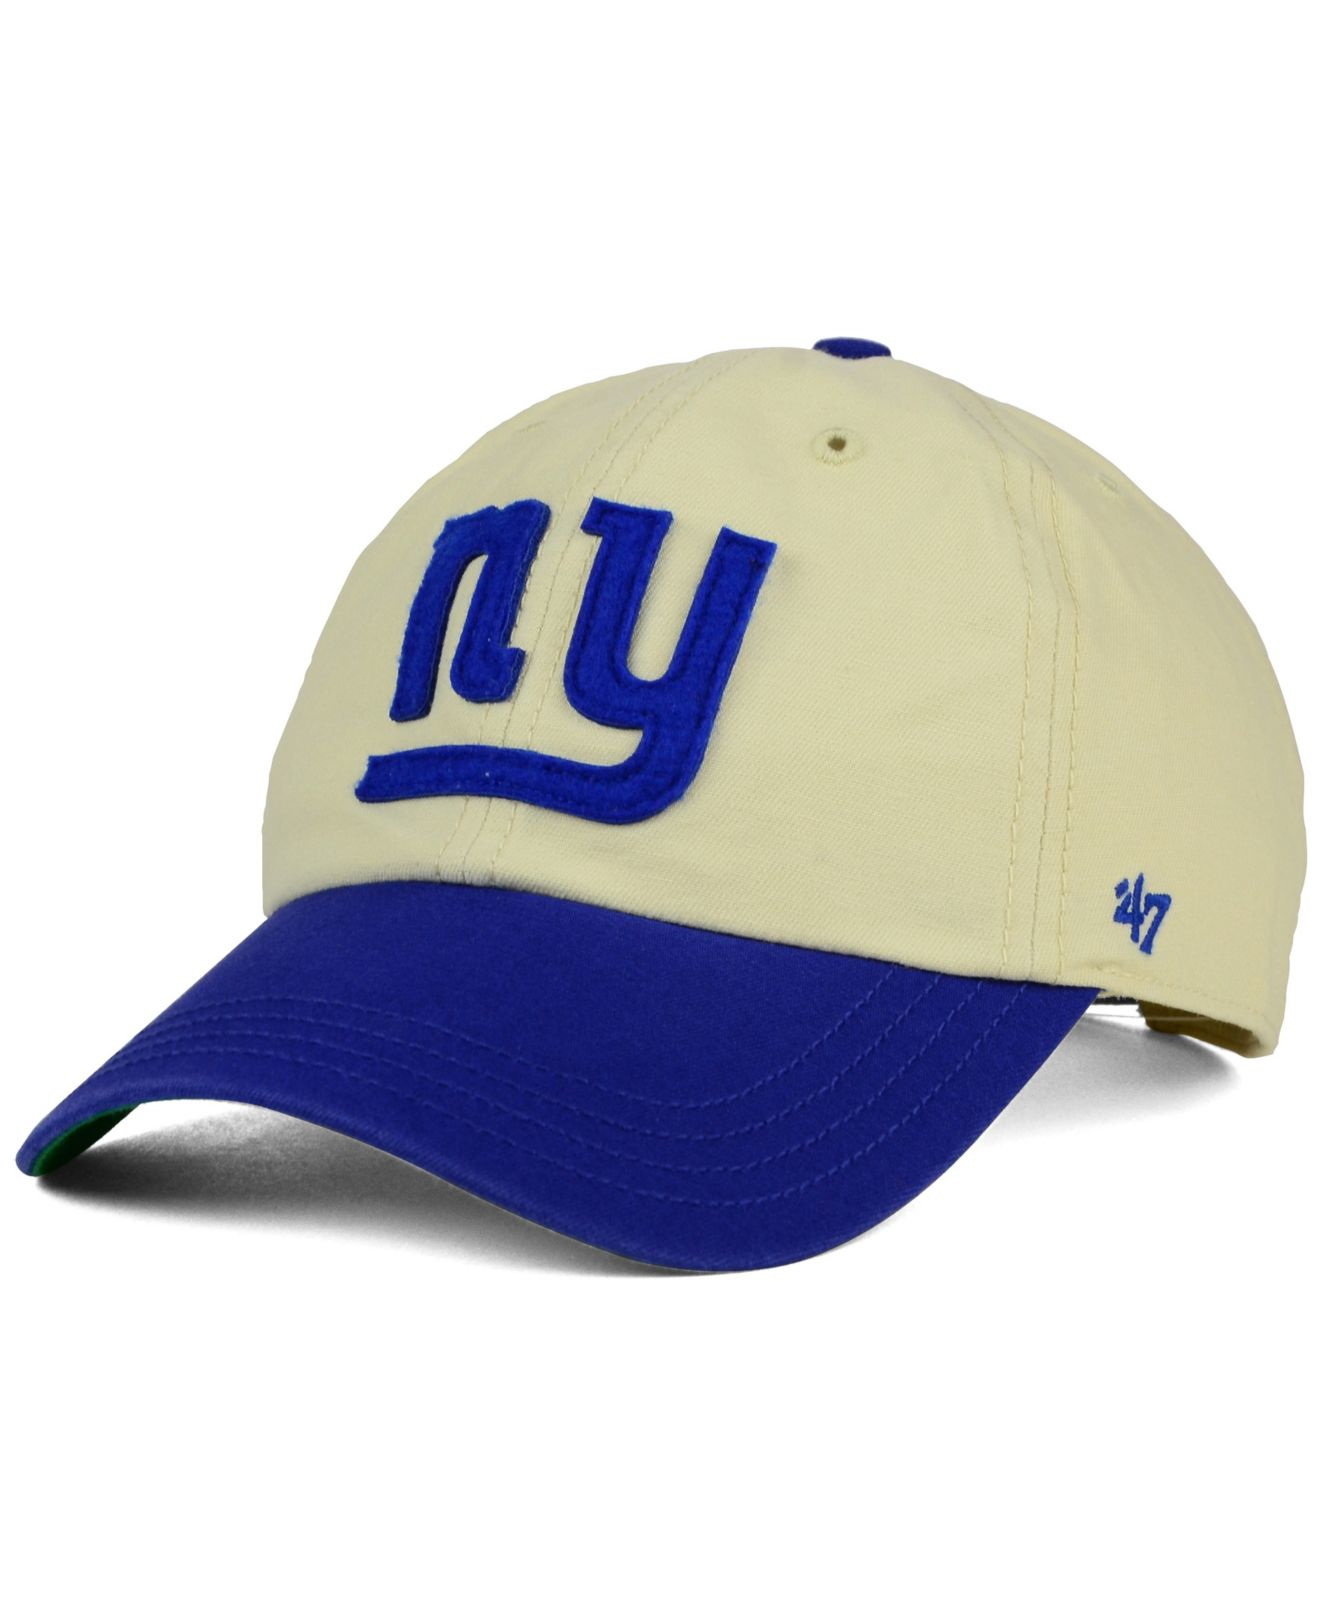 Lyst - 47 Brand New York Giants Horseshoe Clean Up Cap in Natural ... 9fc367fa0